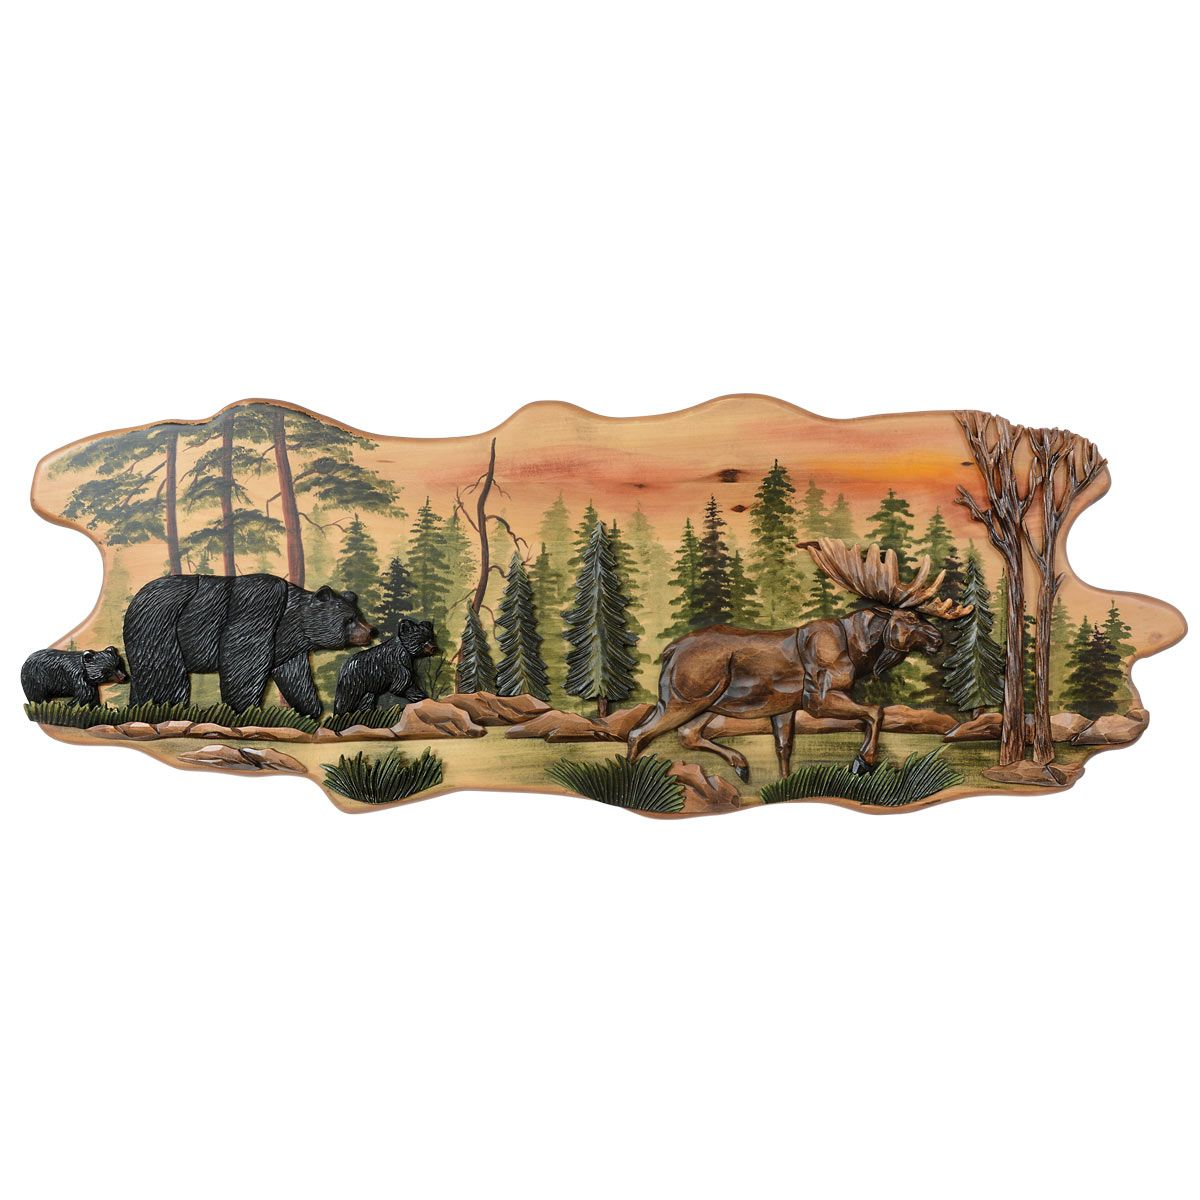 Bear Amp Moose Trail Carved Wood Wall Art